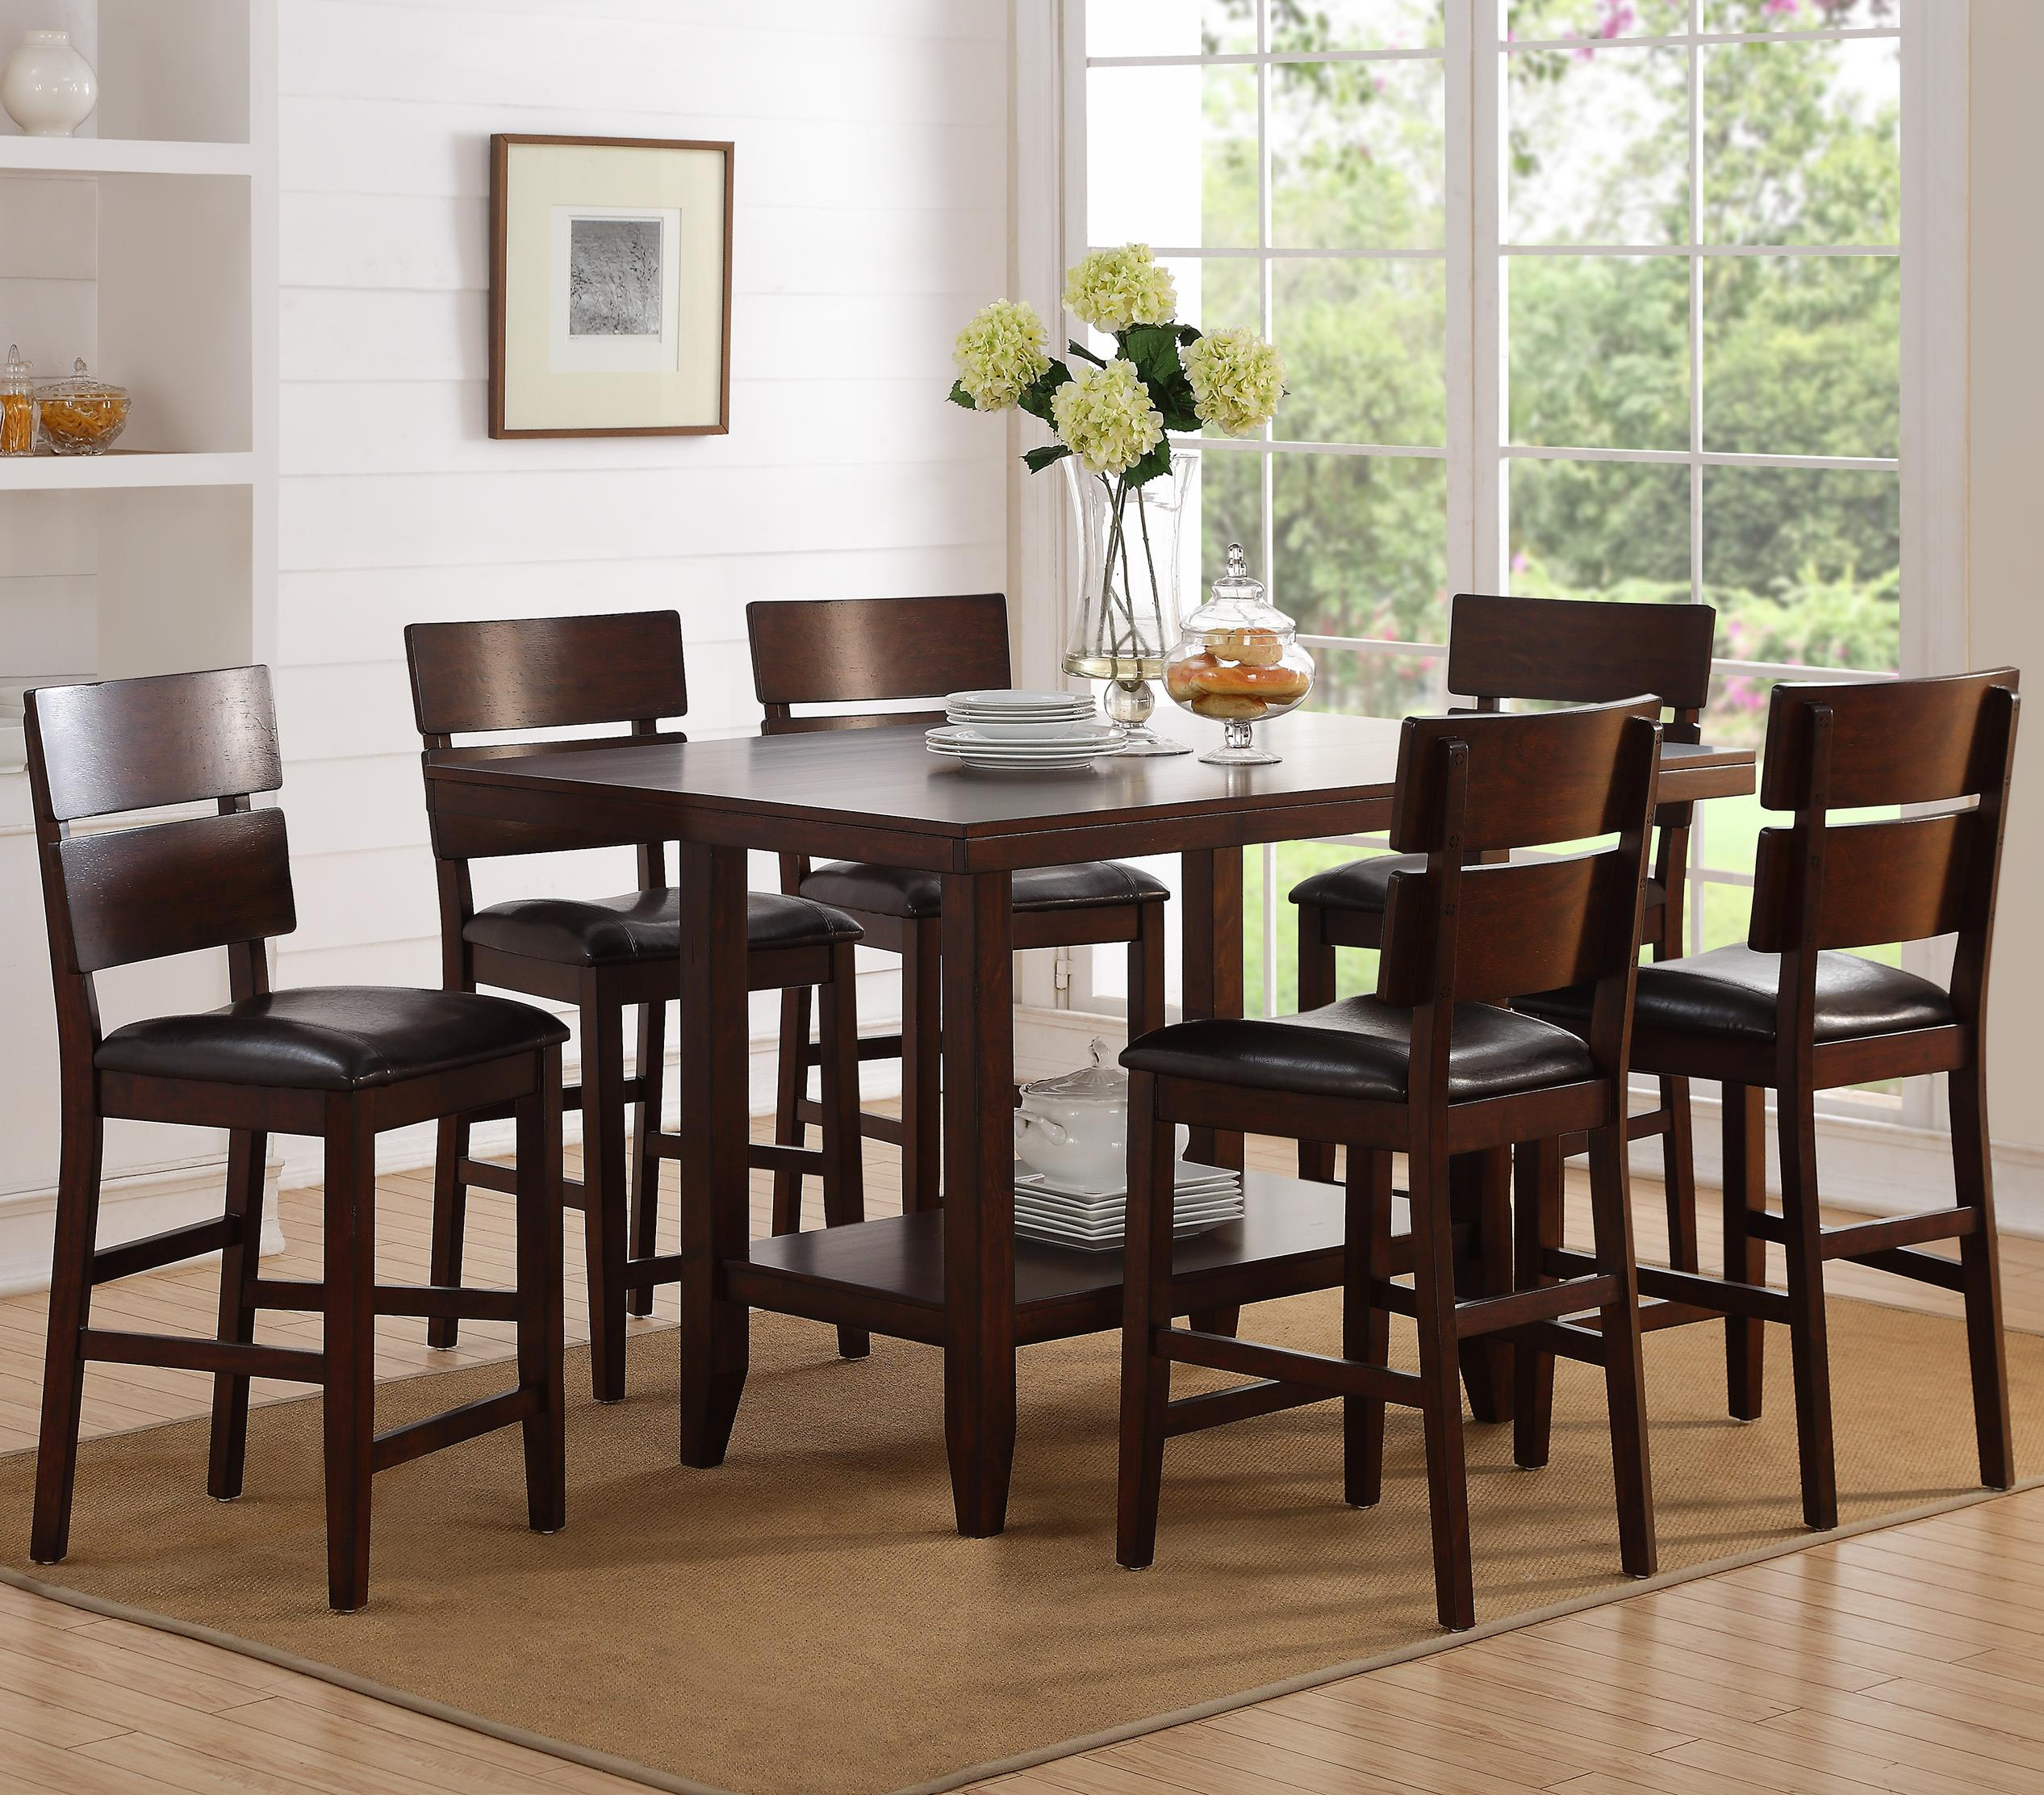 Crown Mark Newcomb Table and Chair Set - Item Number: 2709T-4258+6x2709S-24